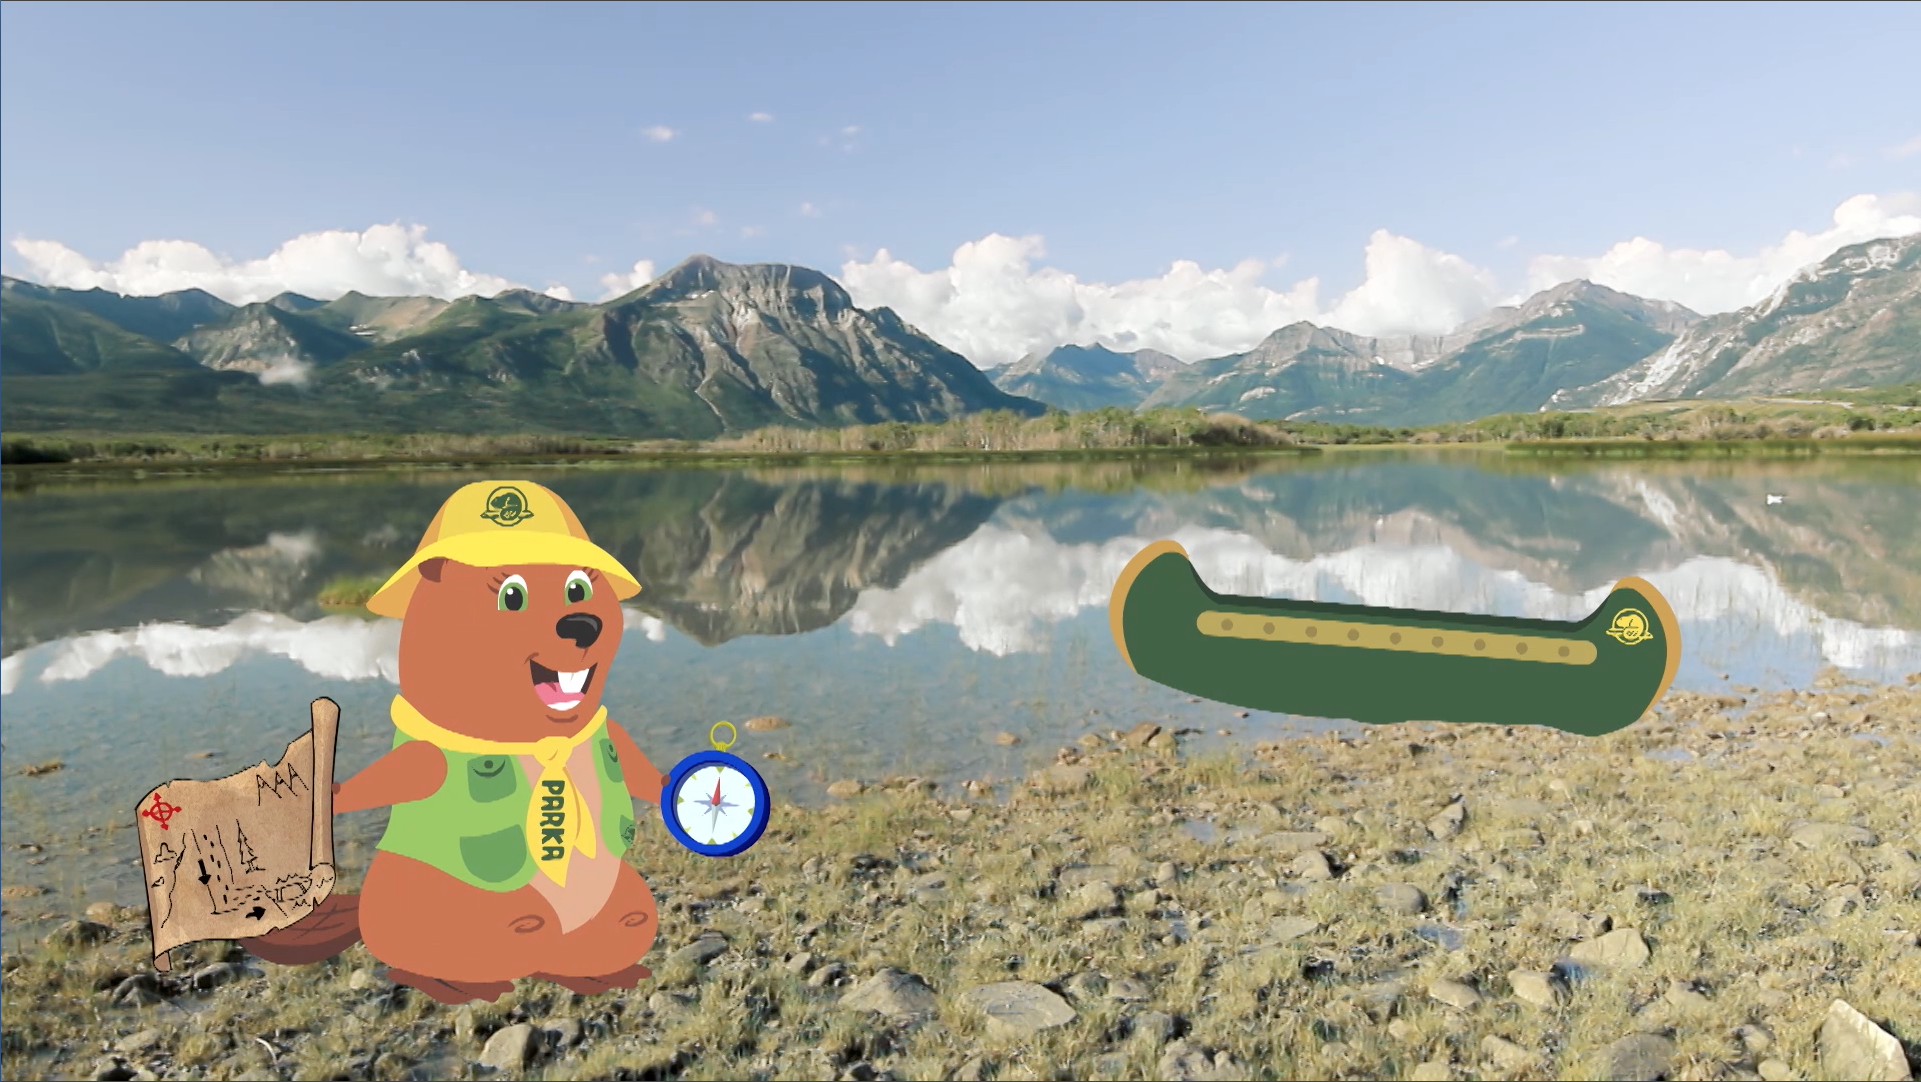 Parka uses a map and a compass to find her way to her canoe.